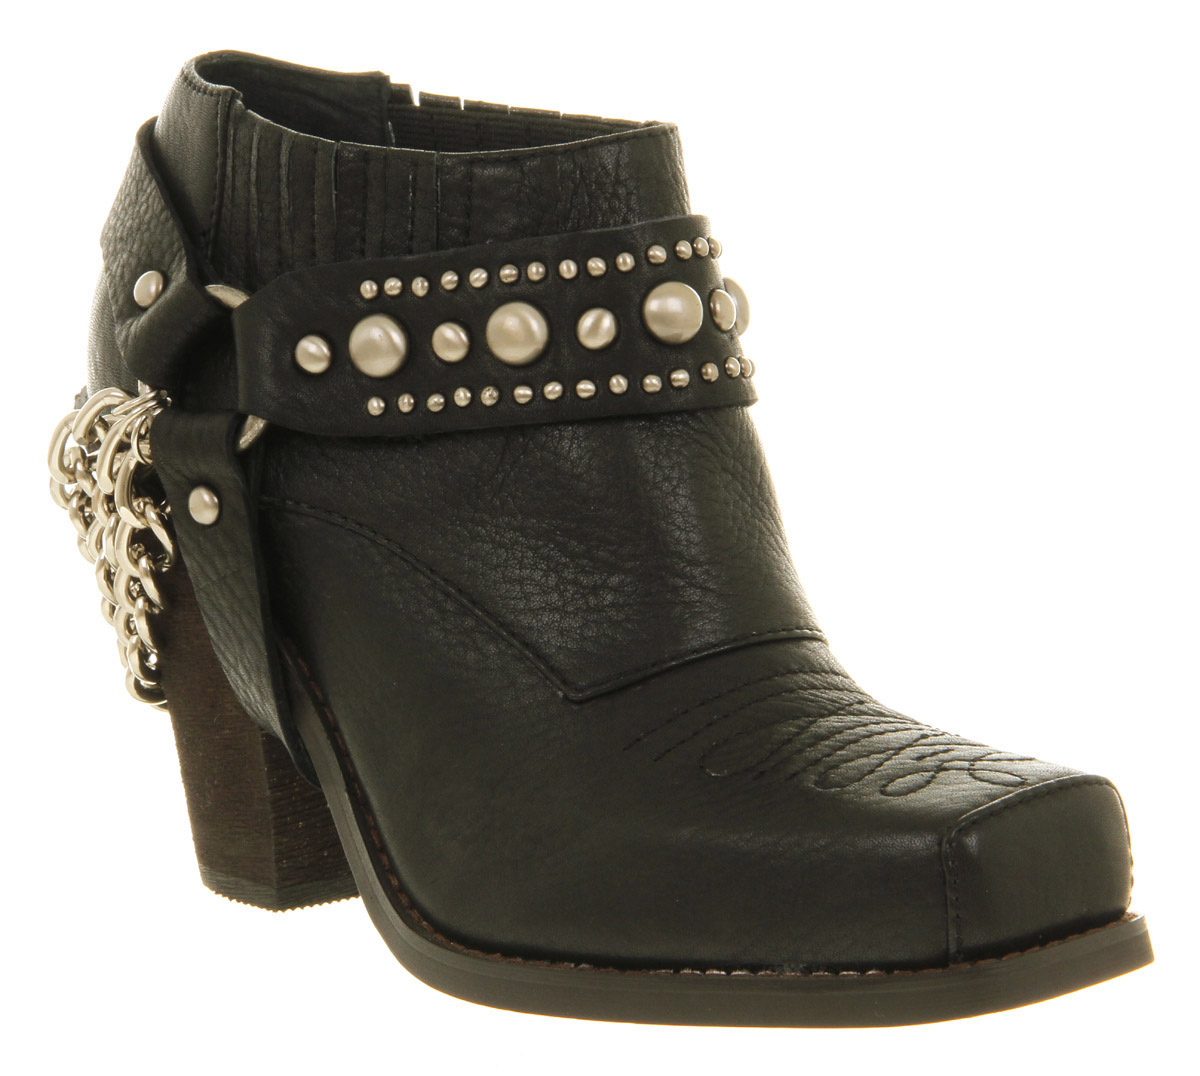 Womens-Jeffrey-Campbell-Gene-Ankle-Boot-Black-Leather-Boots